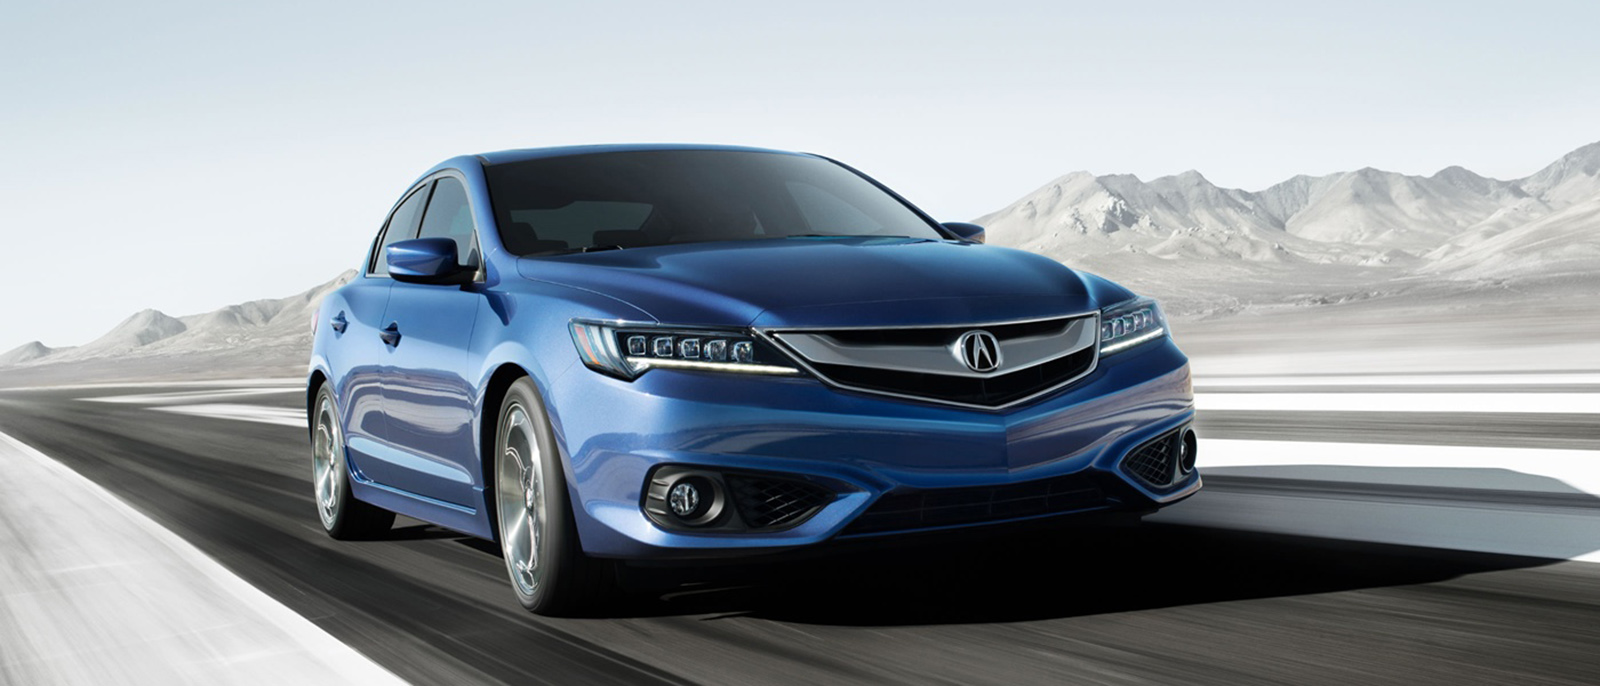 2017 Acura ILX Driving